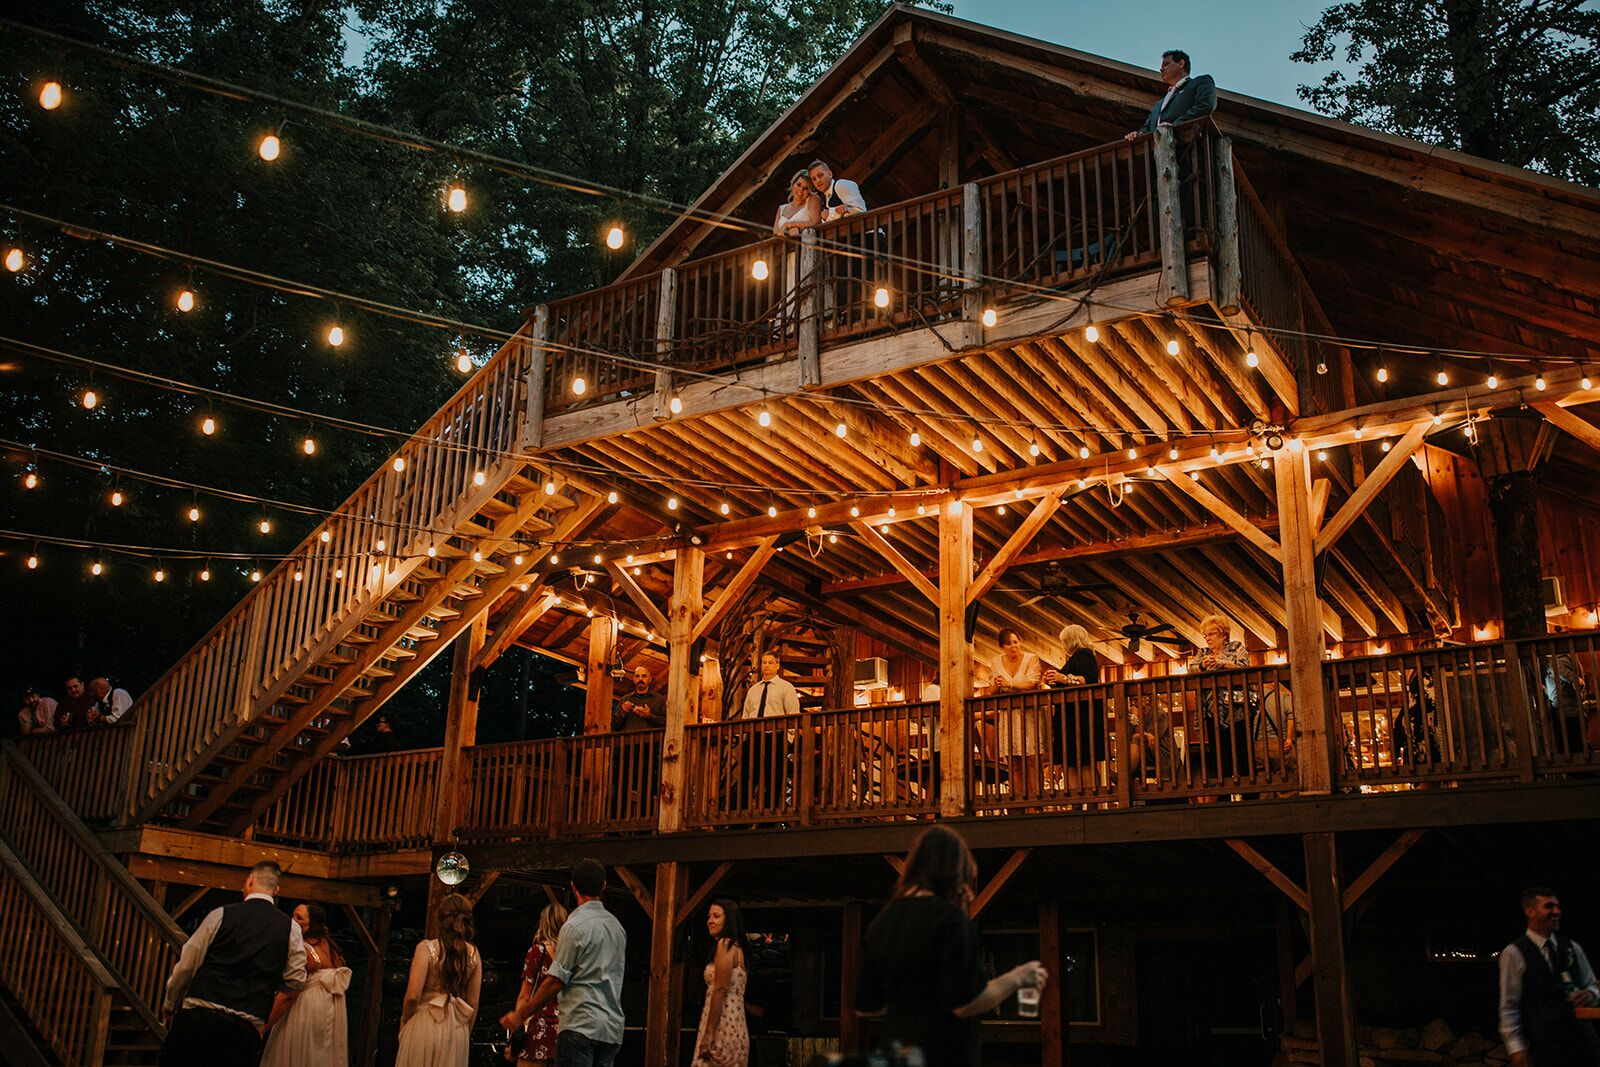 The Grand Barn And Treehouses At The Mohicans Reception